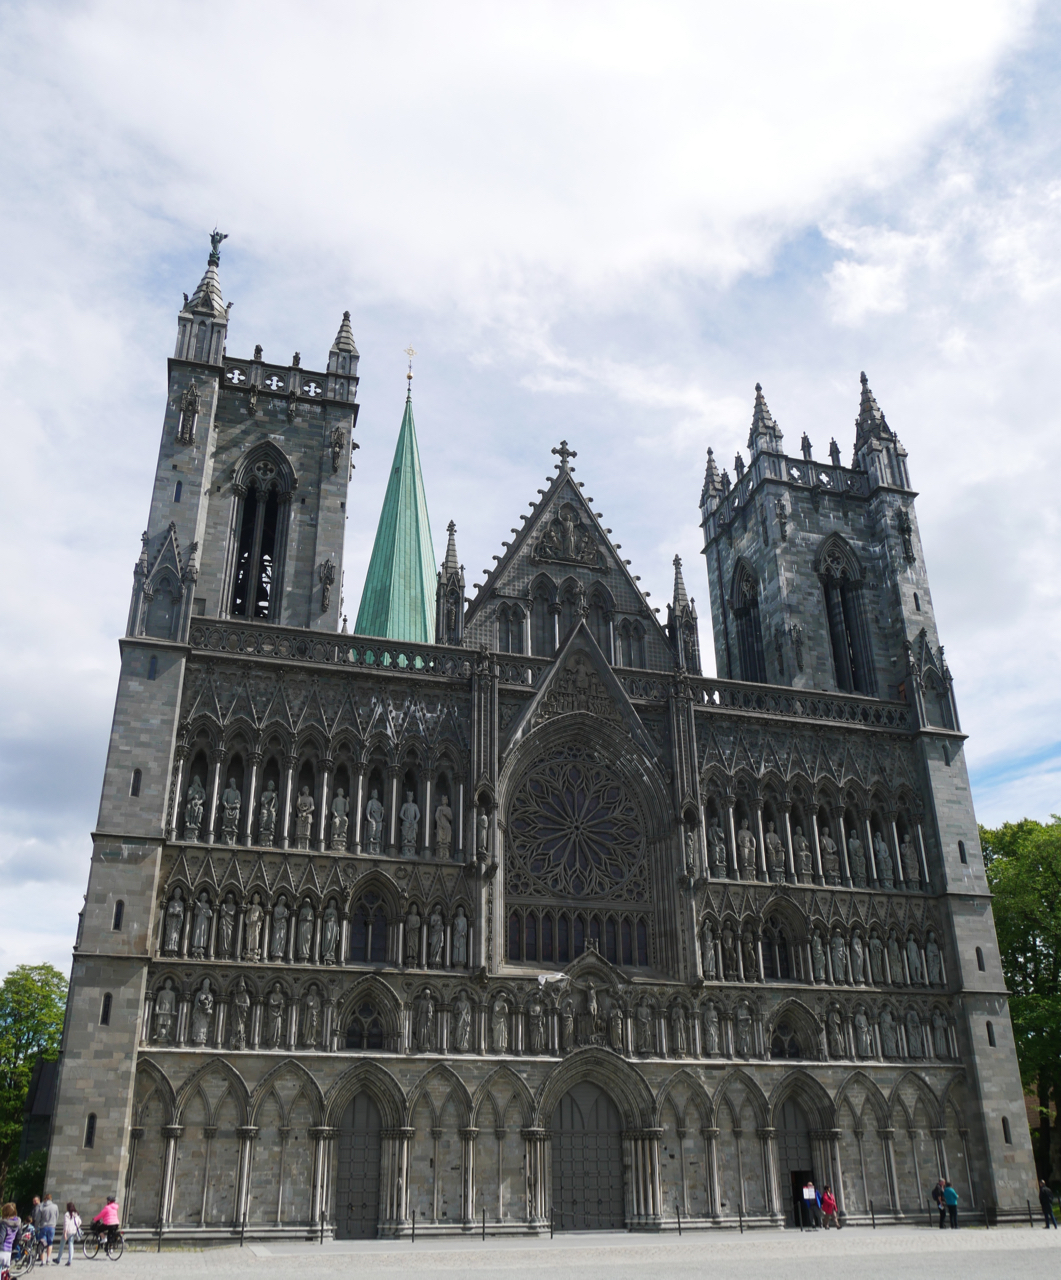 The western wall of Nidaros Cathedral, Trondheim. The St. Michael sculpture made by his father is on the top left turret.